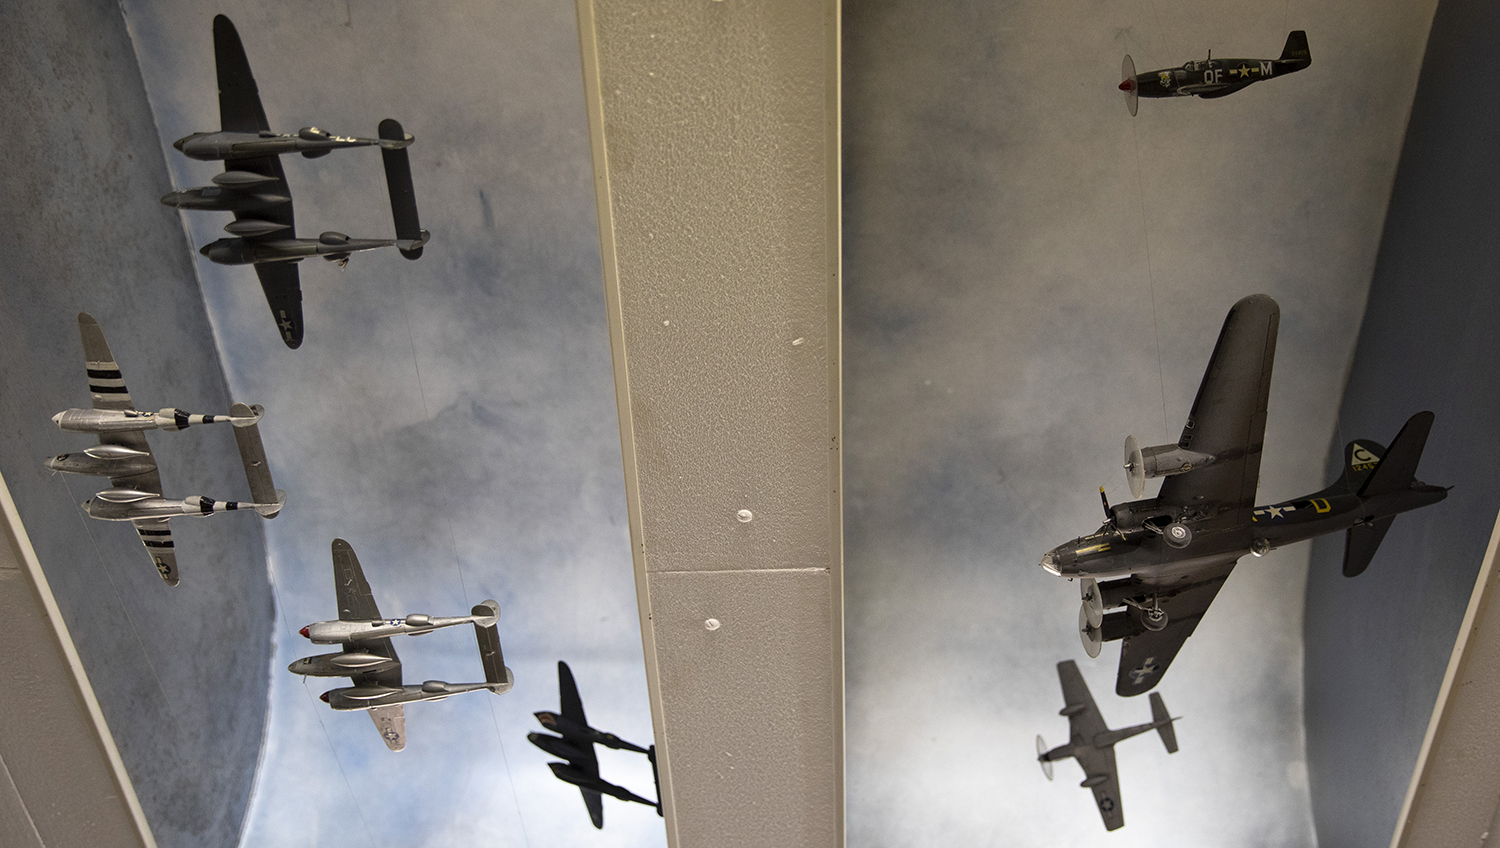 In this photo taken on Thursday, Nov. 7, 2019, a collection of World War II planes hang from the ceiling at the Remember Museum 39-45 in Thimister-Clermont, Belgium. (Virginia Mayo/AP)